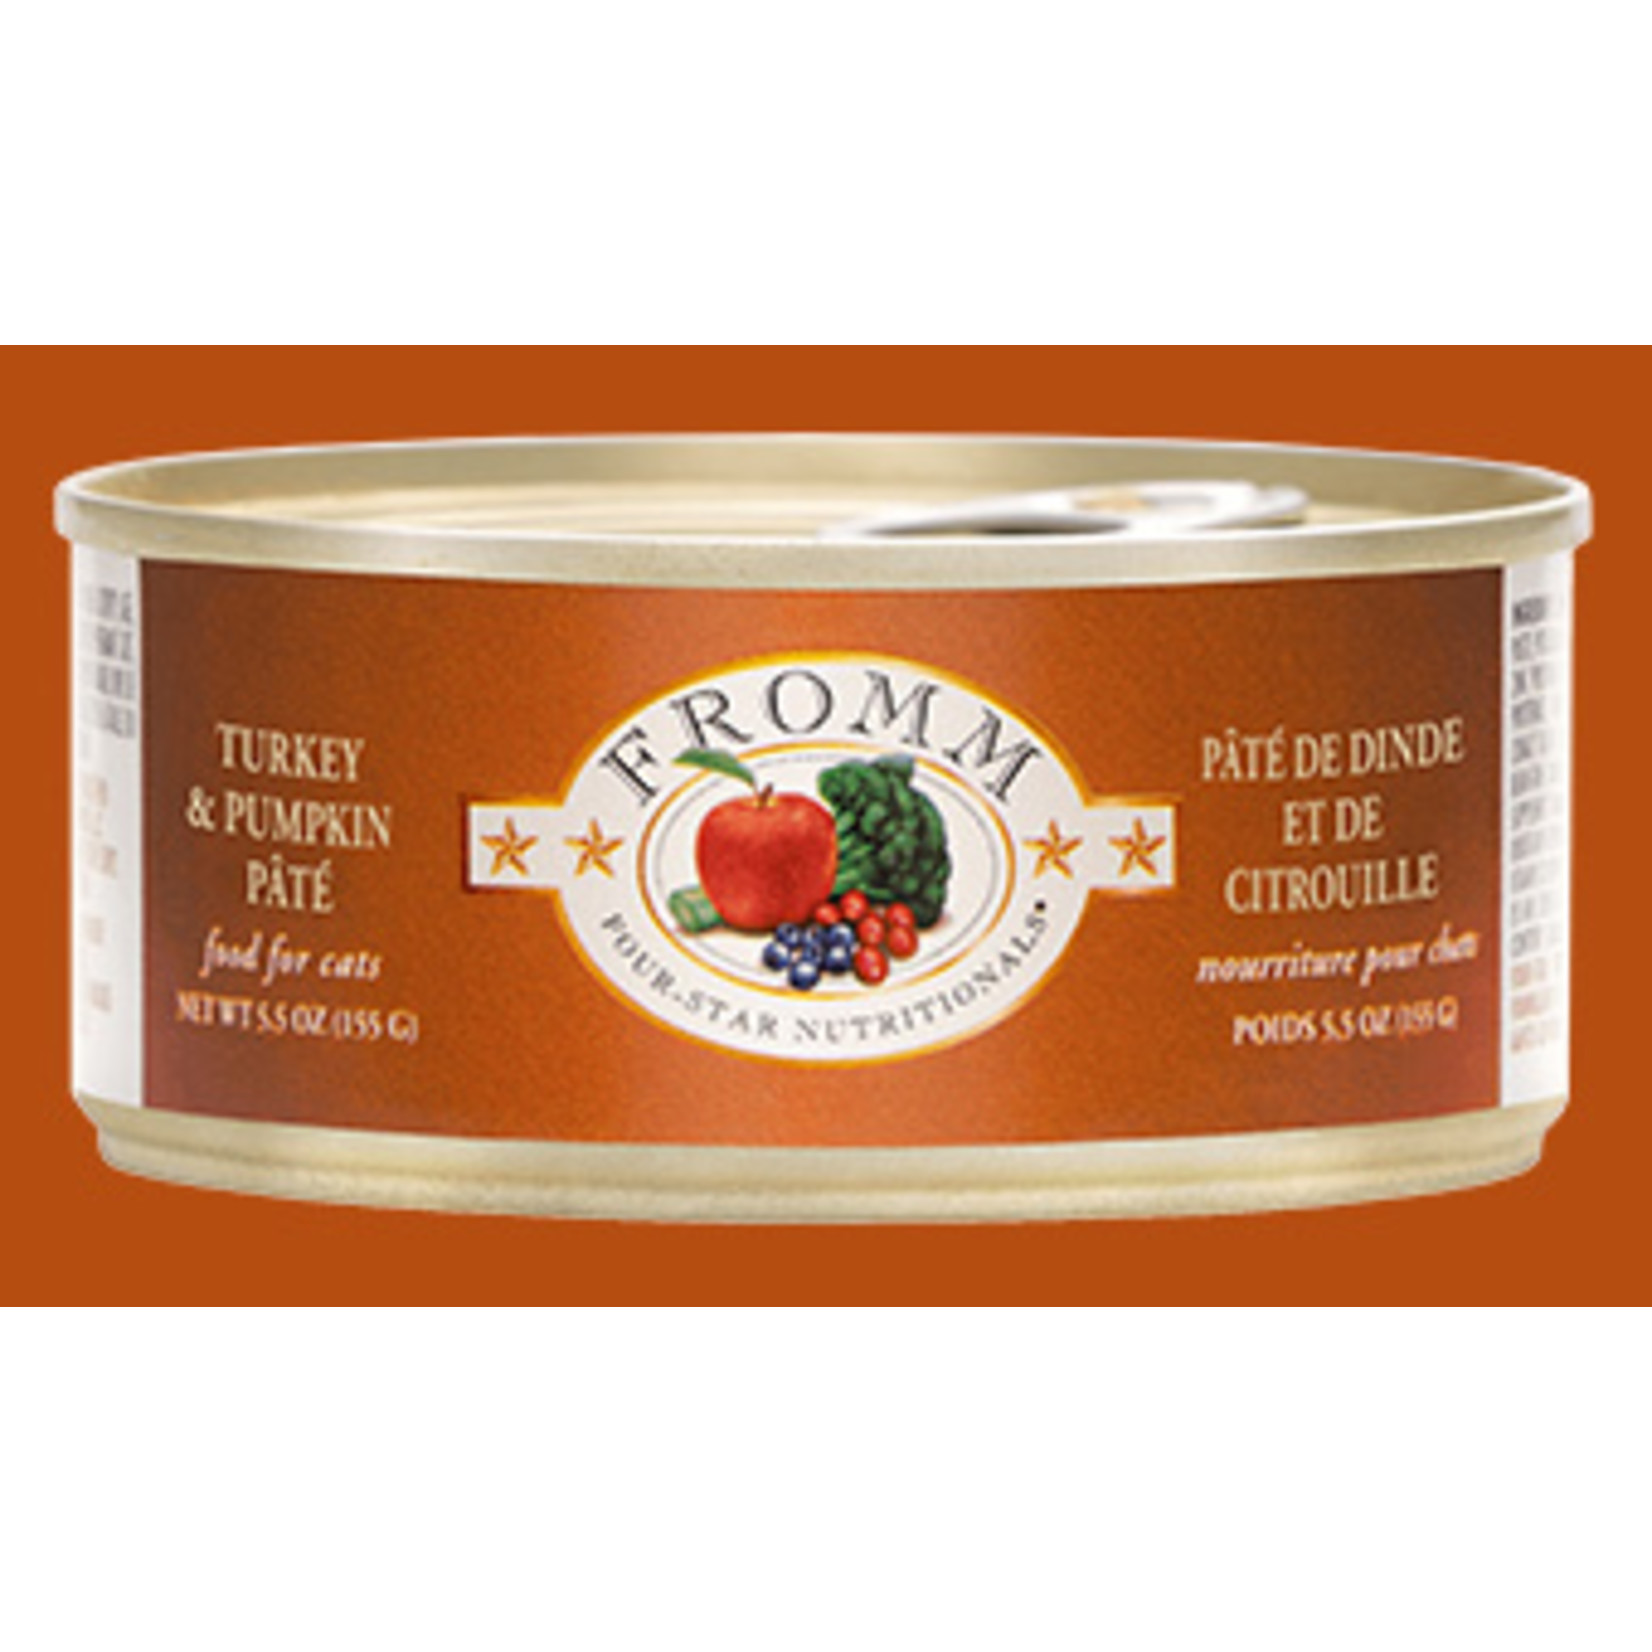 Fromm Family Fromm Turkey & Pumpkin Pate Canned Cat Food 5.5oz